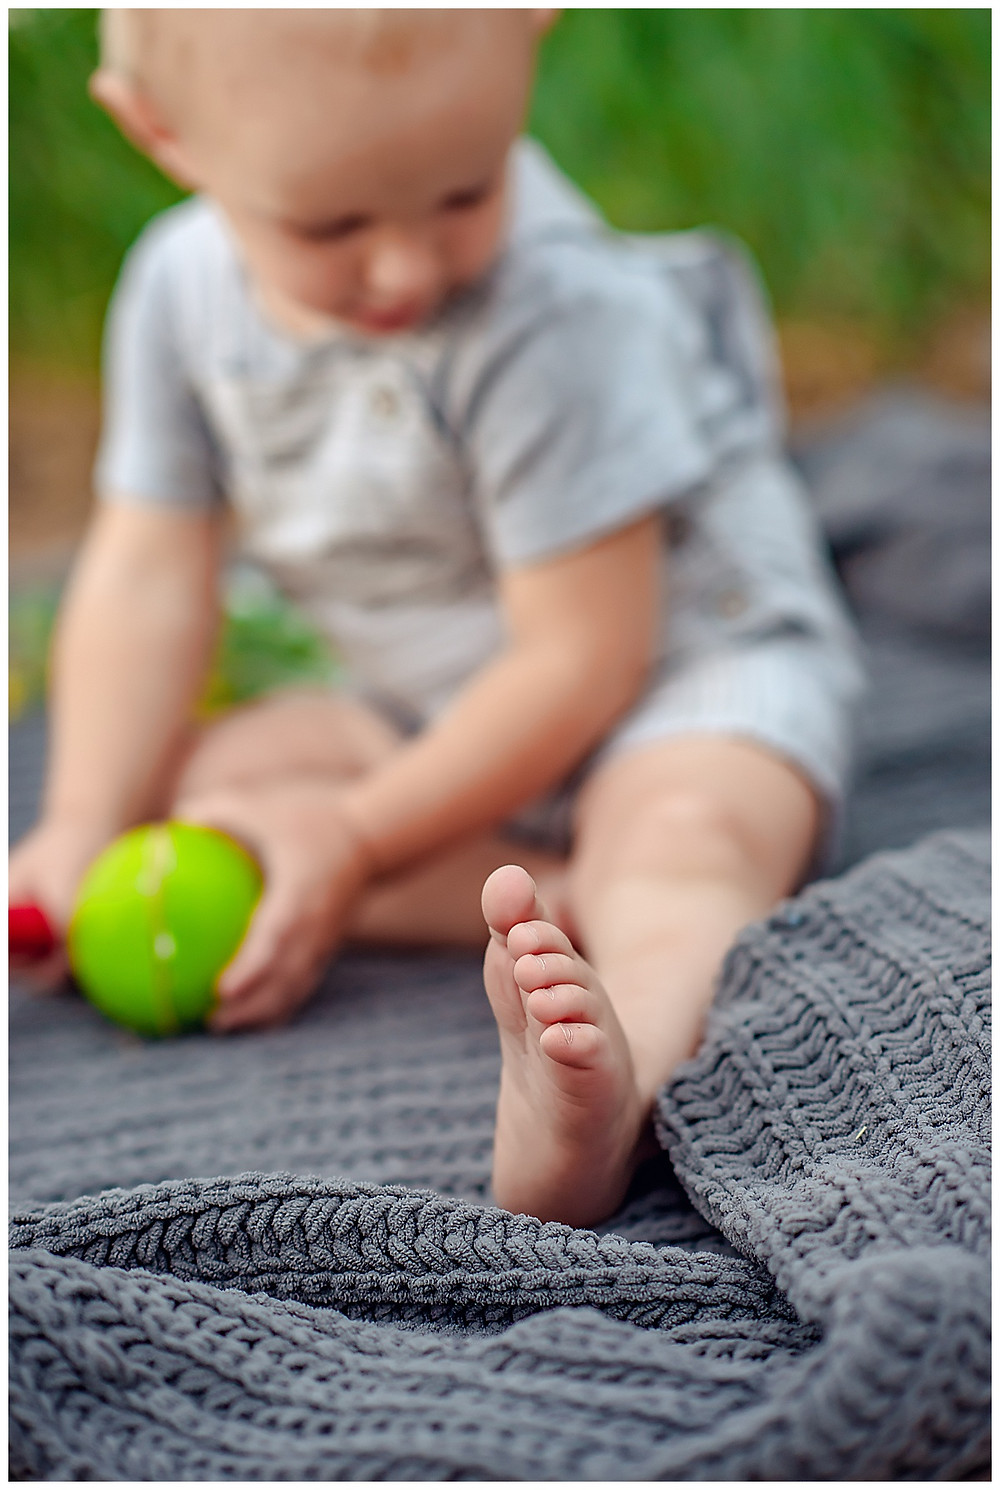 Toddler playing with tennis ball